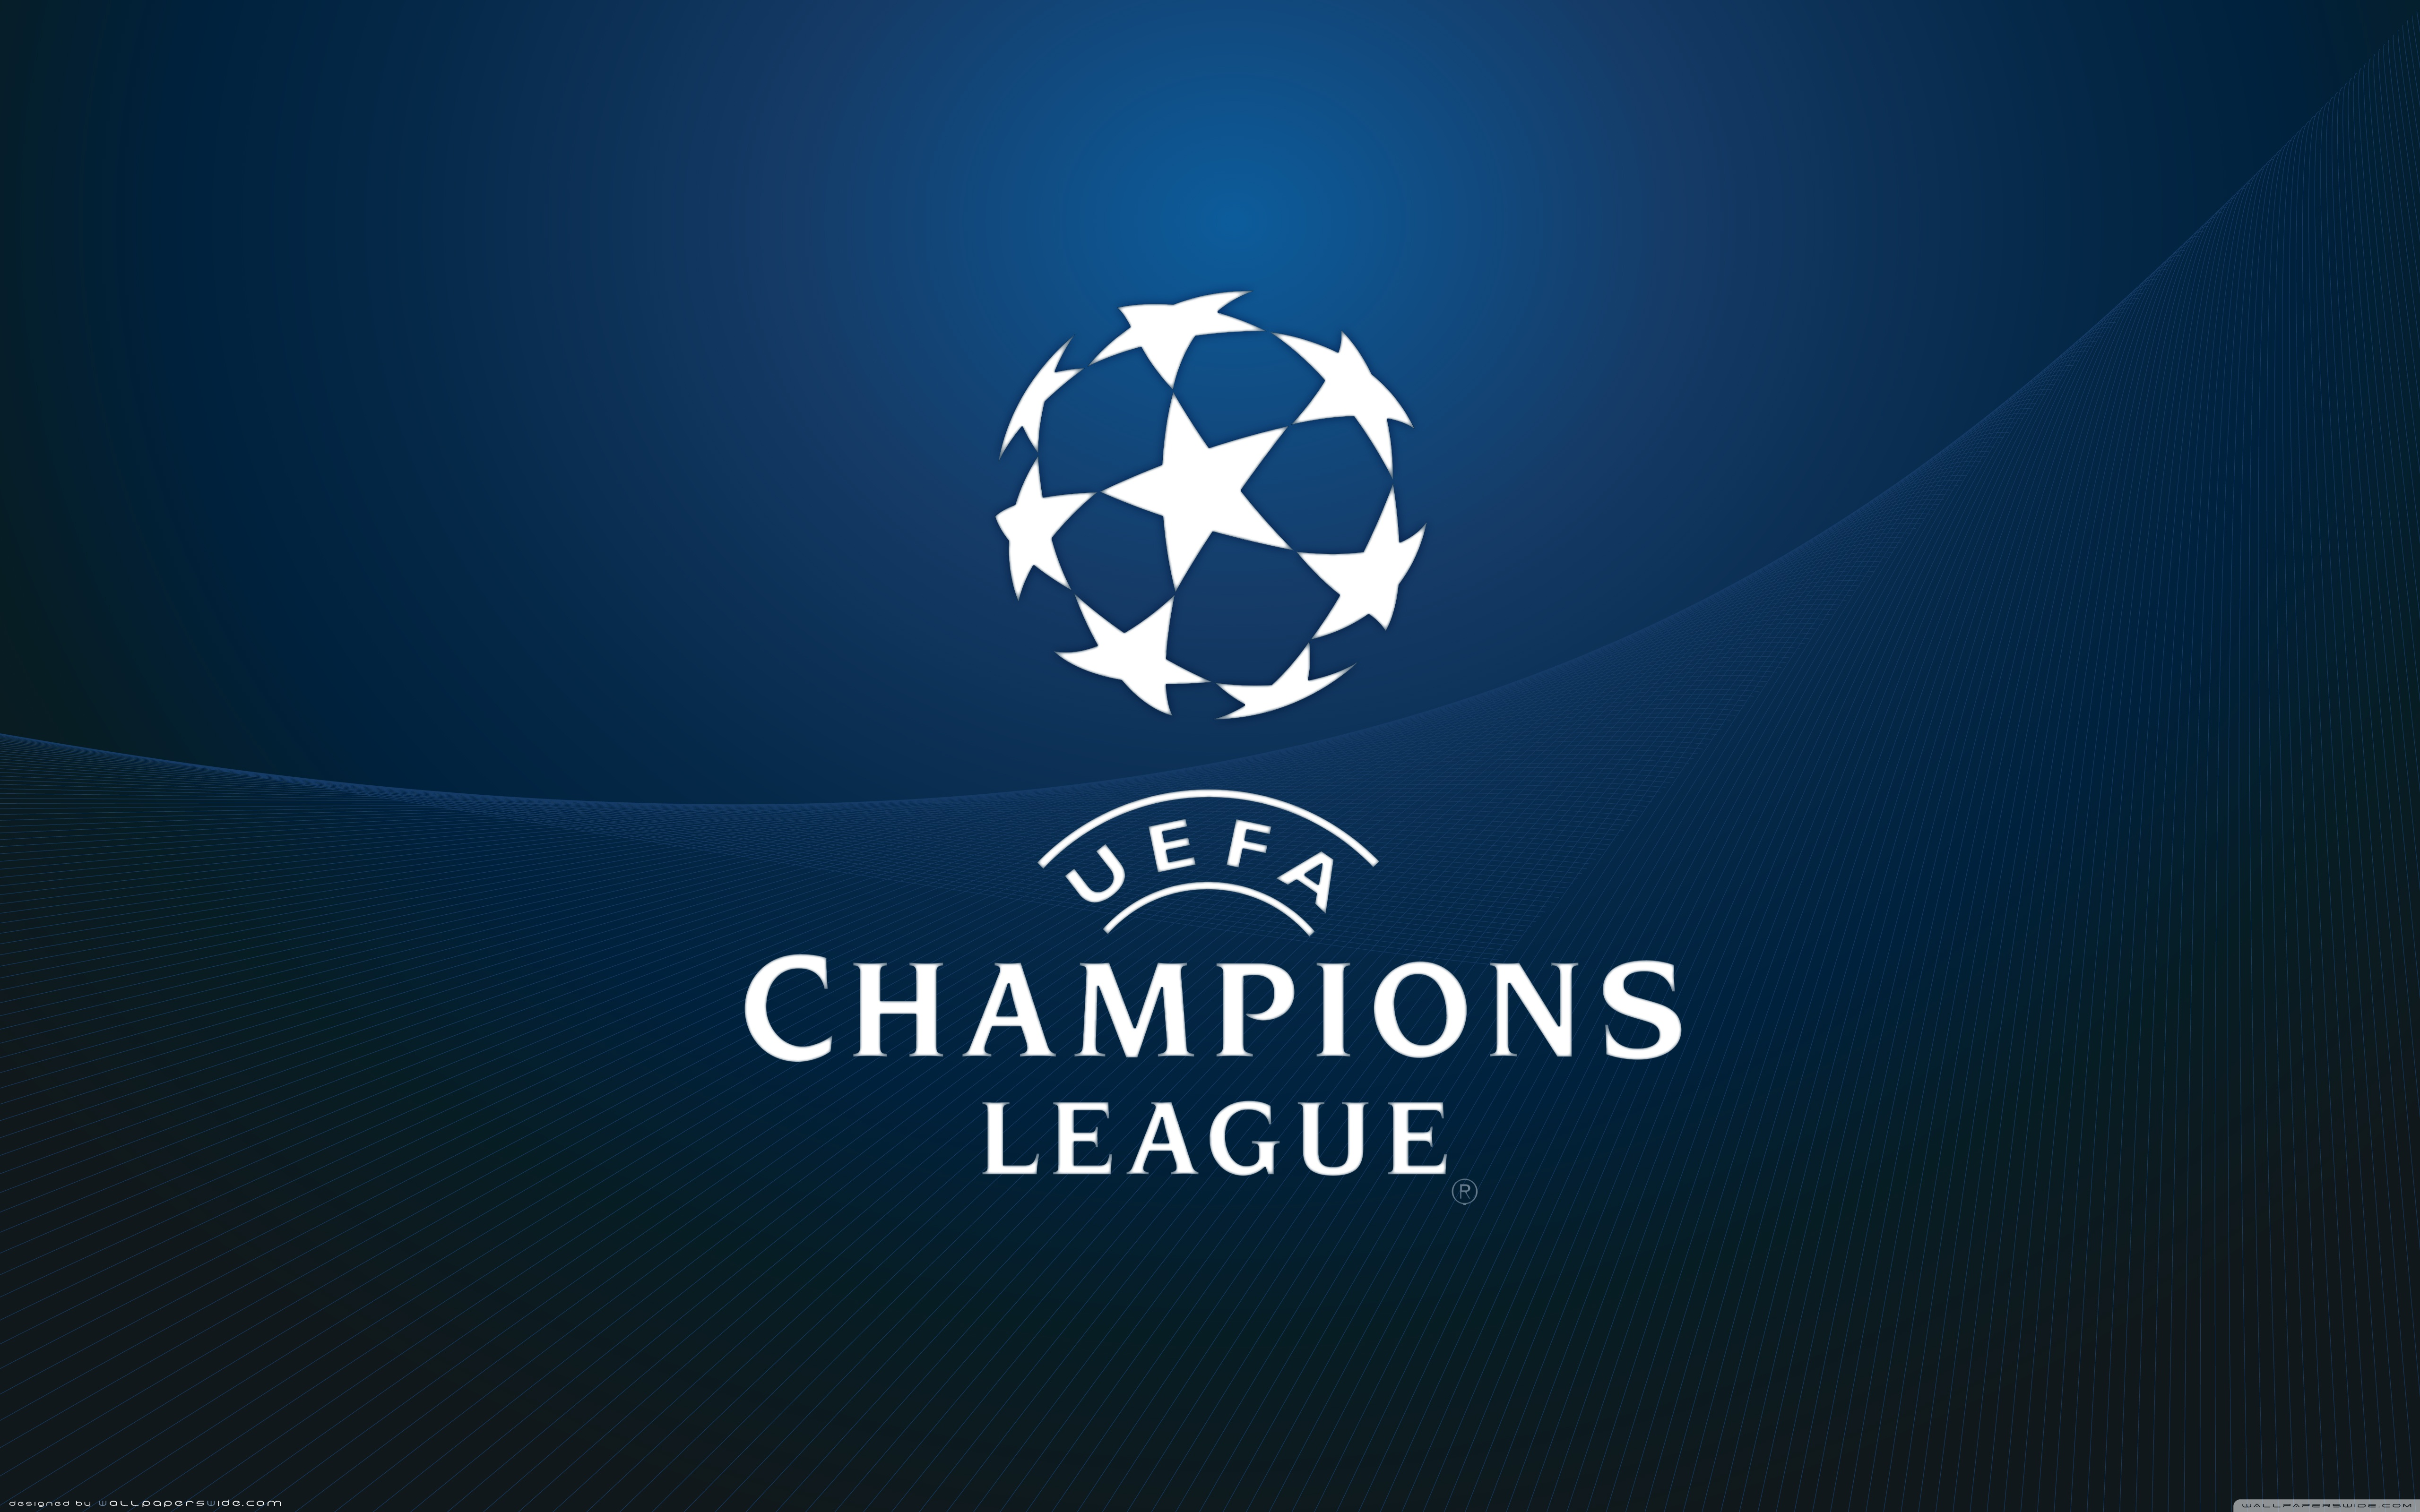 uefa-champions-league-wallpaper-hd-wallpapers